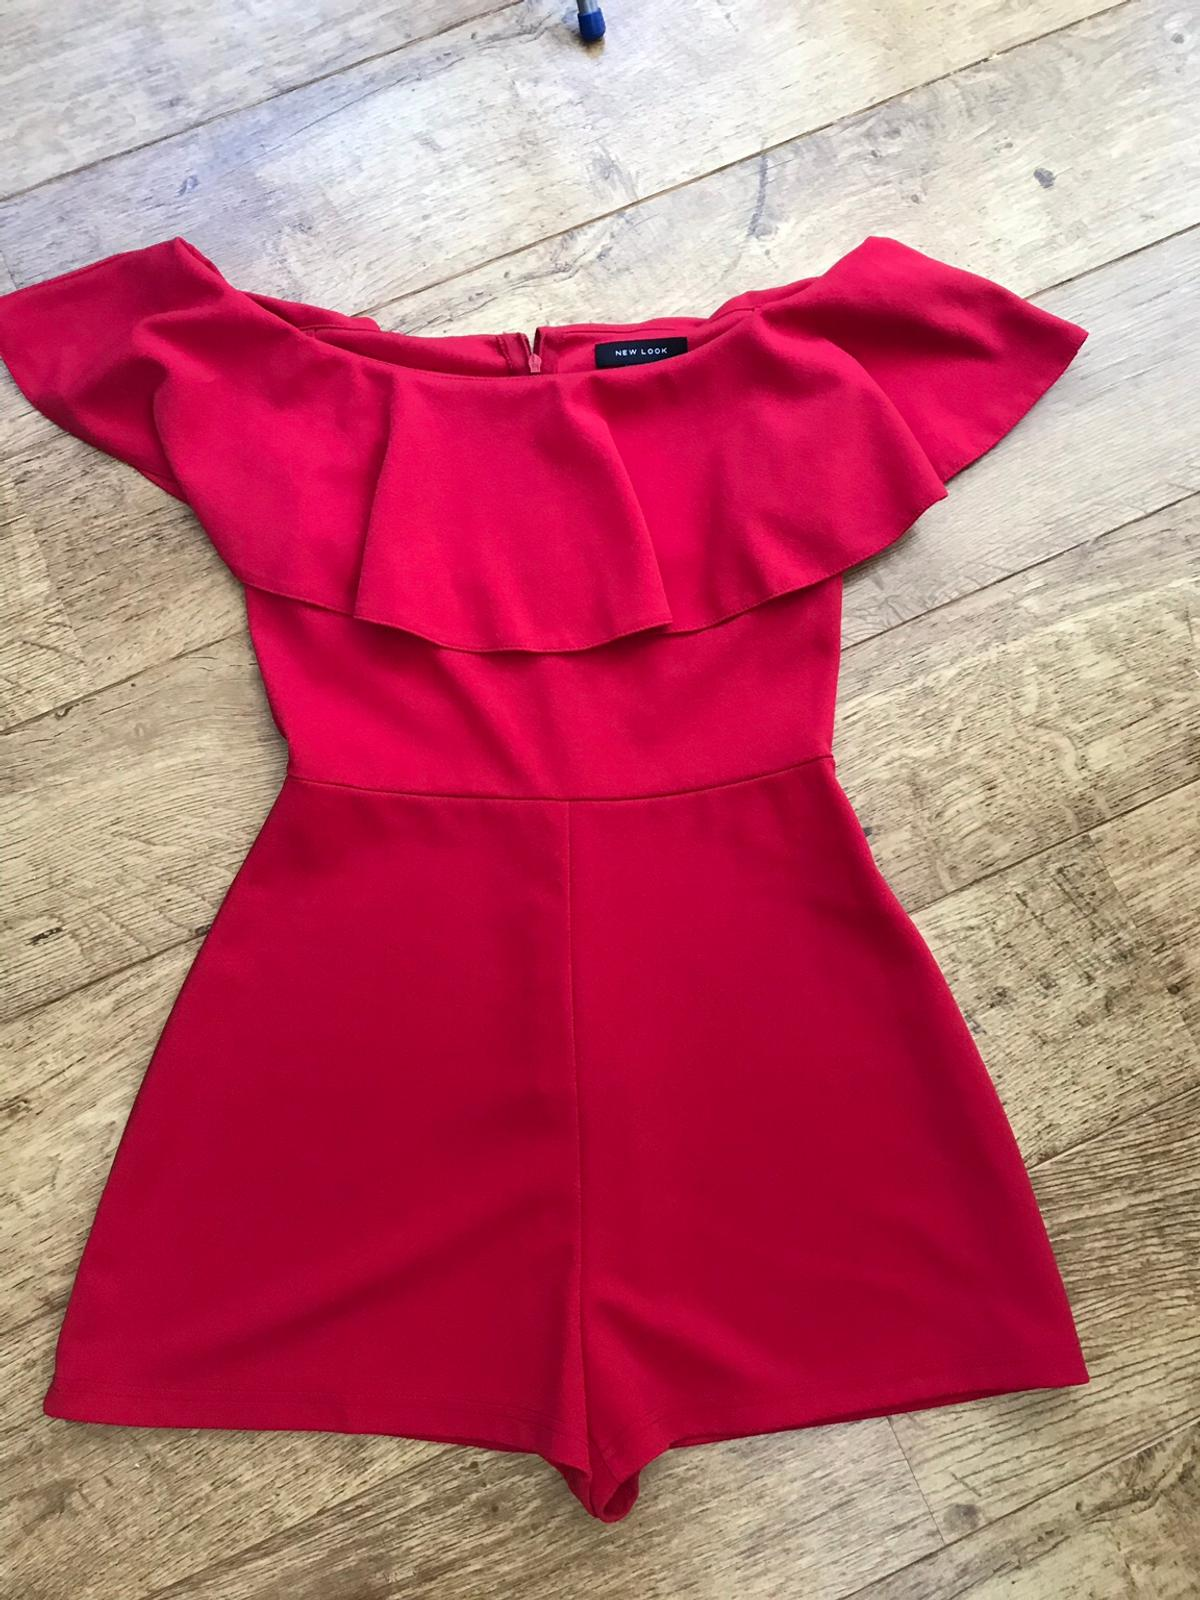 Lovely red off shoulder playsuit by New Look- perfect for summer! Only worn once. Uk Size 12  Rainham, Kent